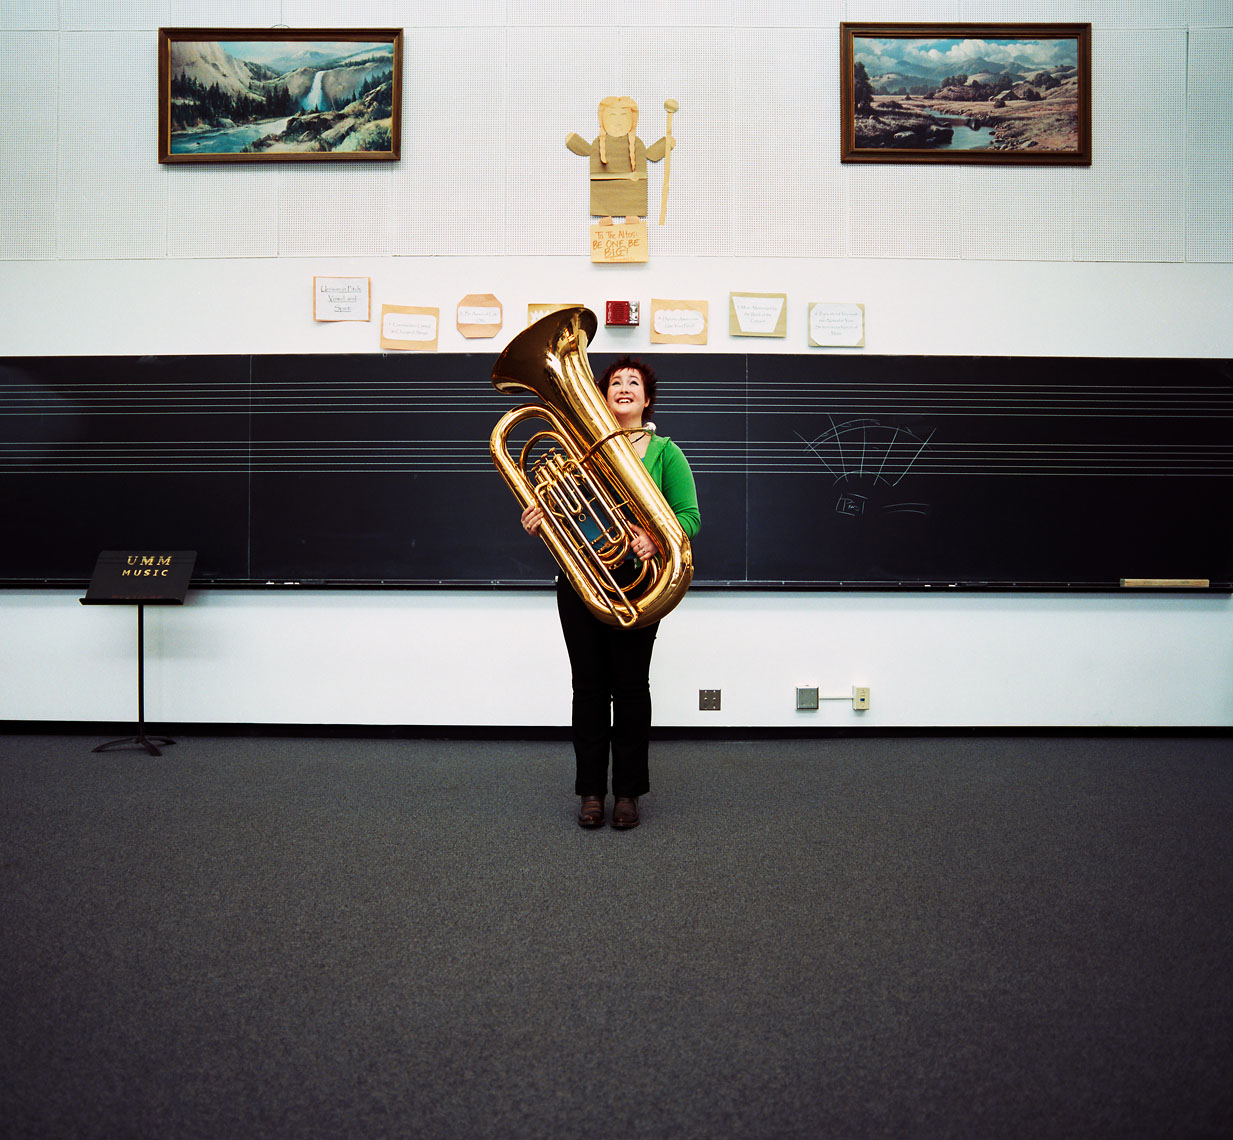 College student with tuba in music room lifestyle